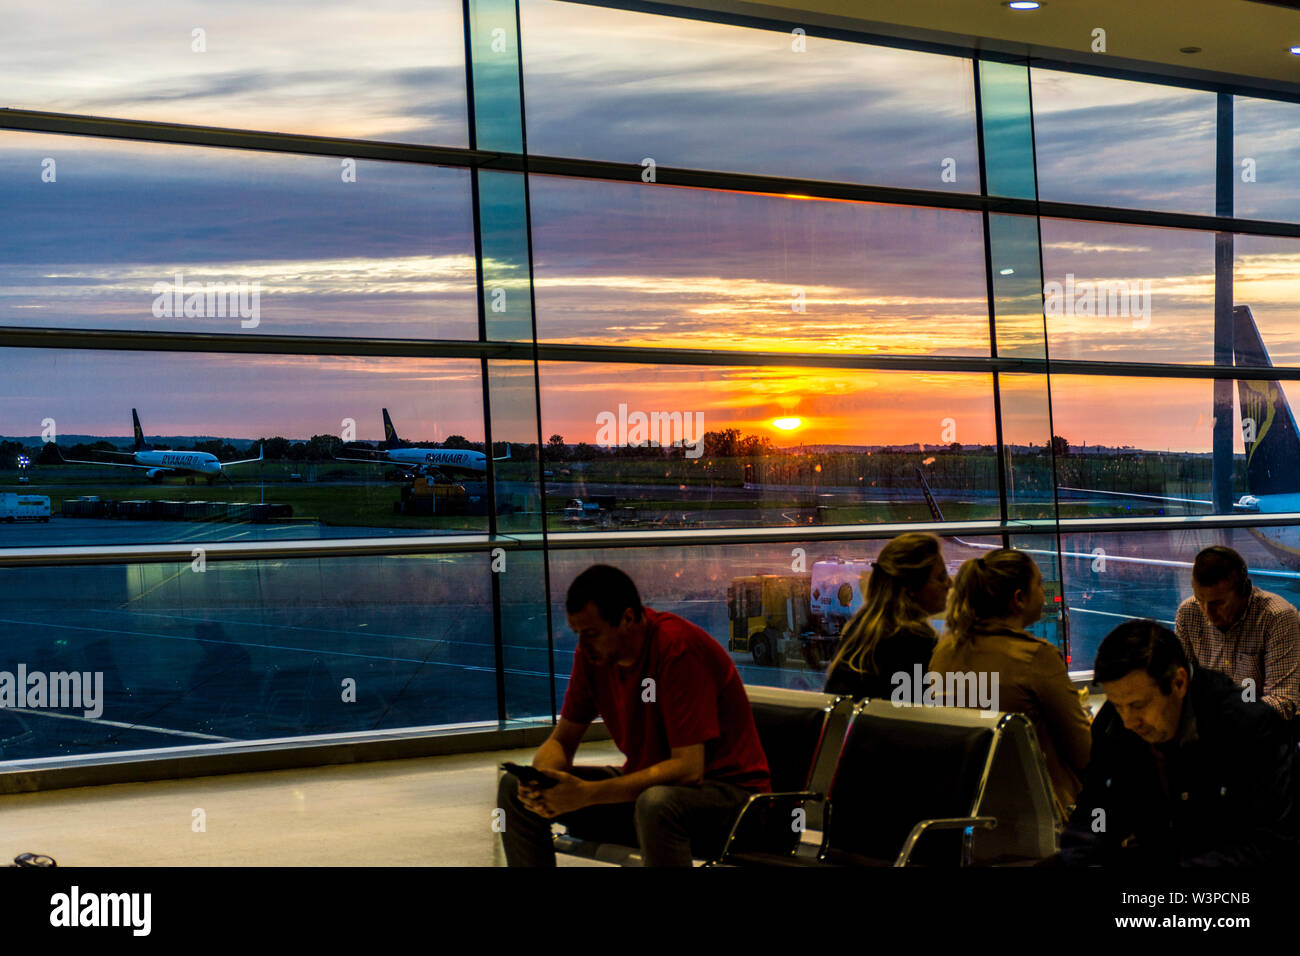 Dublin Airport, Terminal One, Sunrise over the airfield and parked aircraft. Ireland - Stock Image